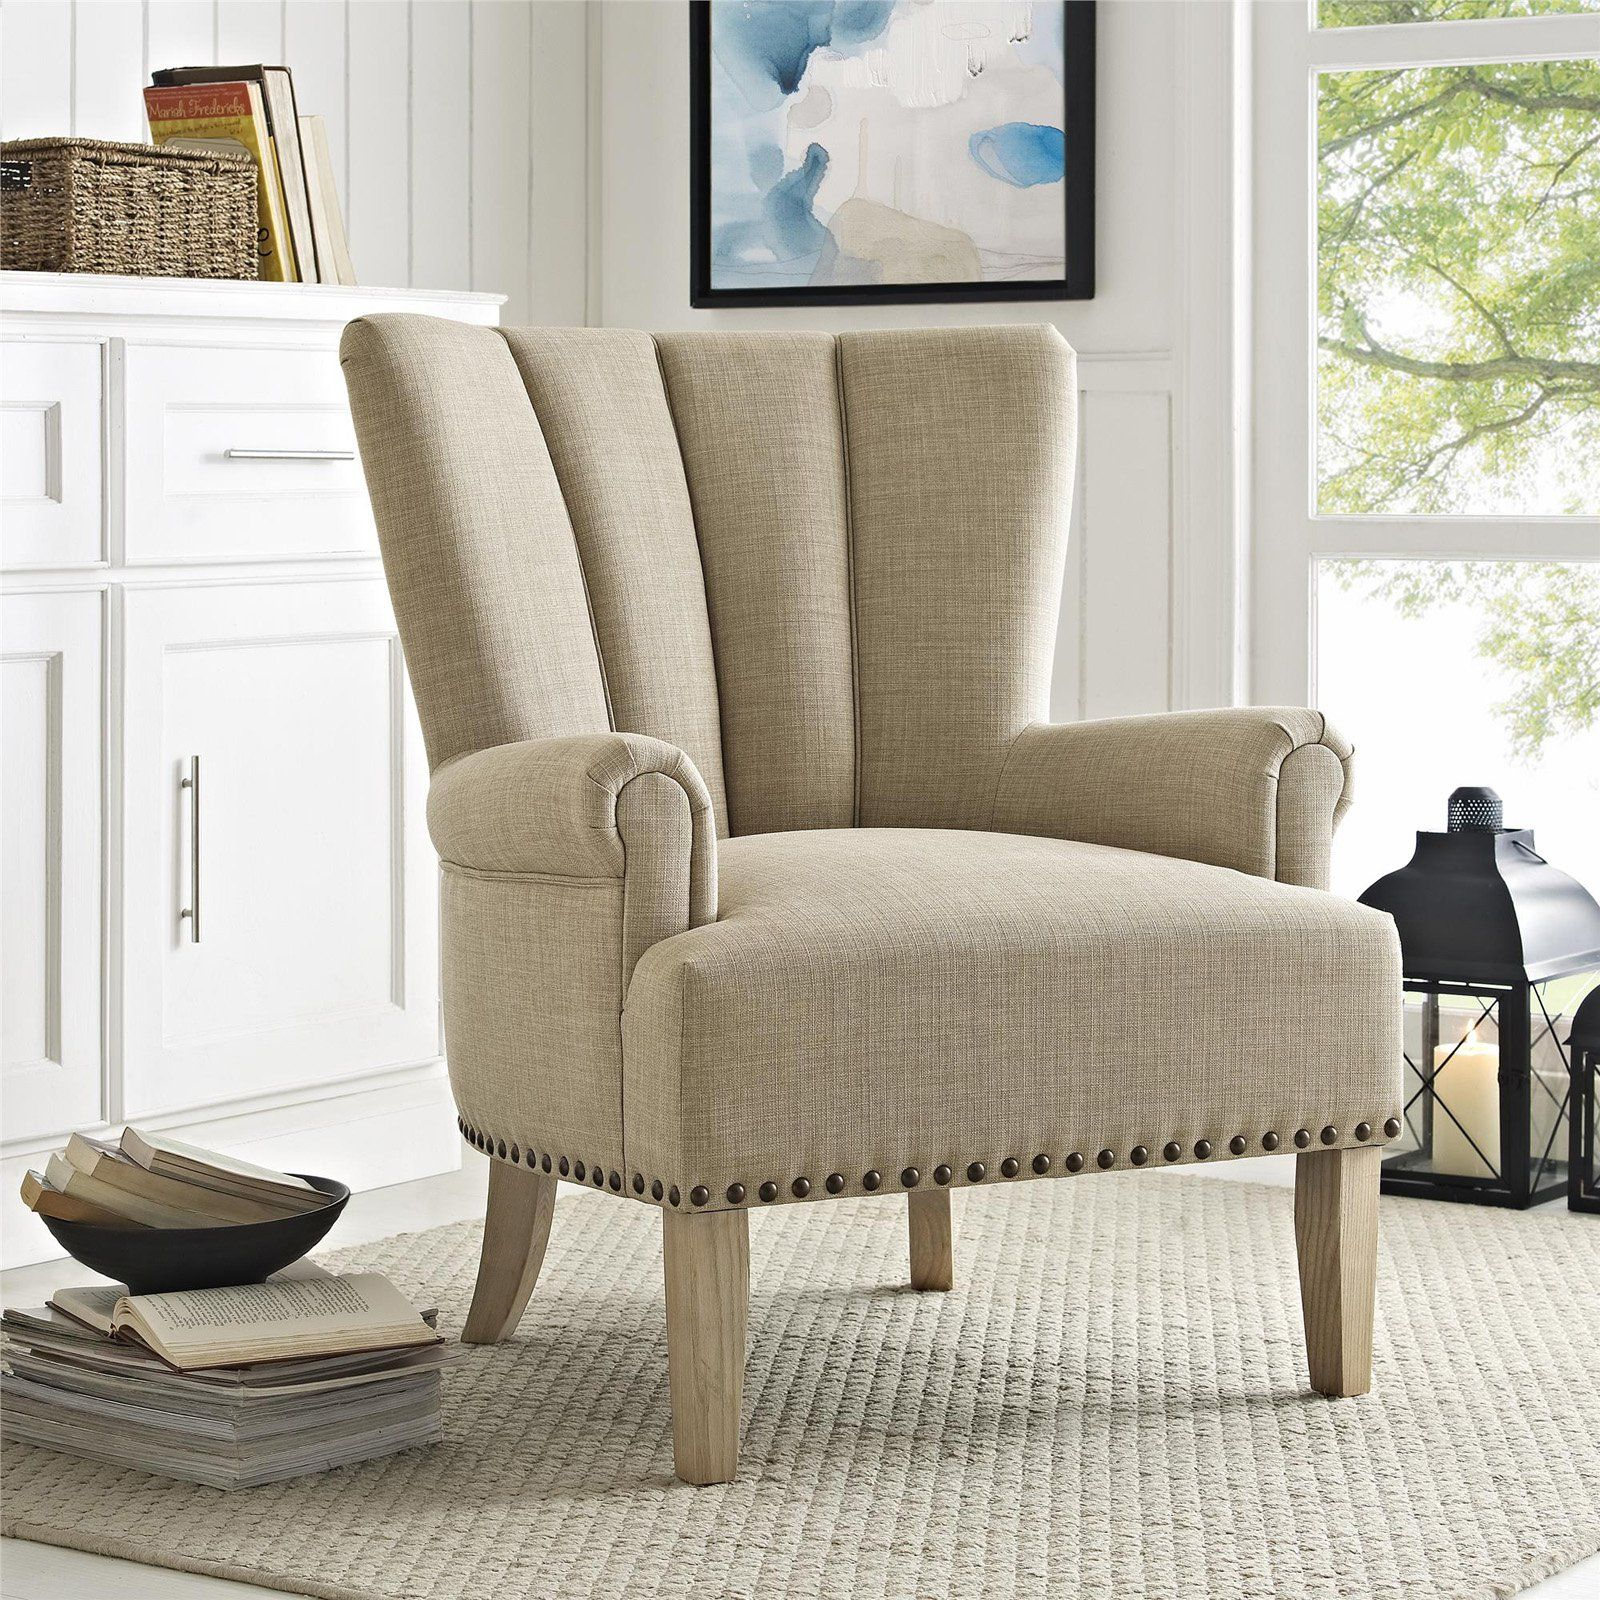 3ebff2744bf889d462a29fef2238dc40 - Better Homes And Gardens Rolled Arm Accent Chair Gray